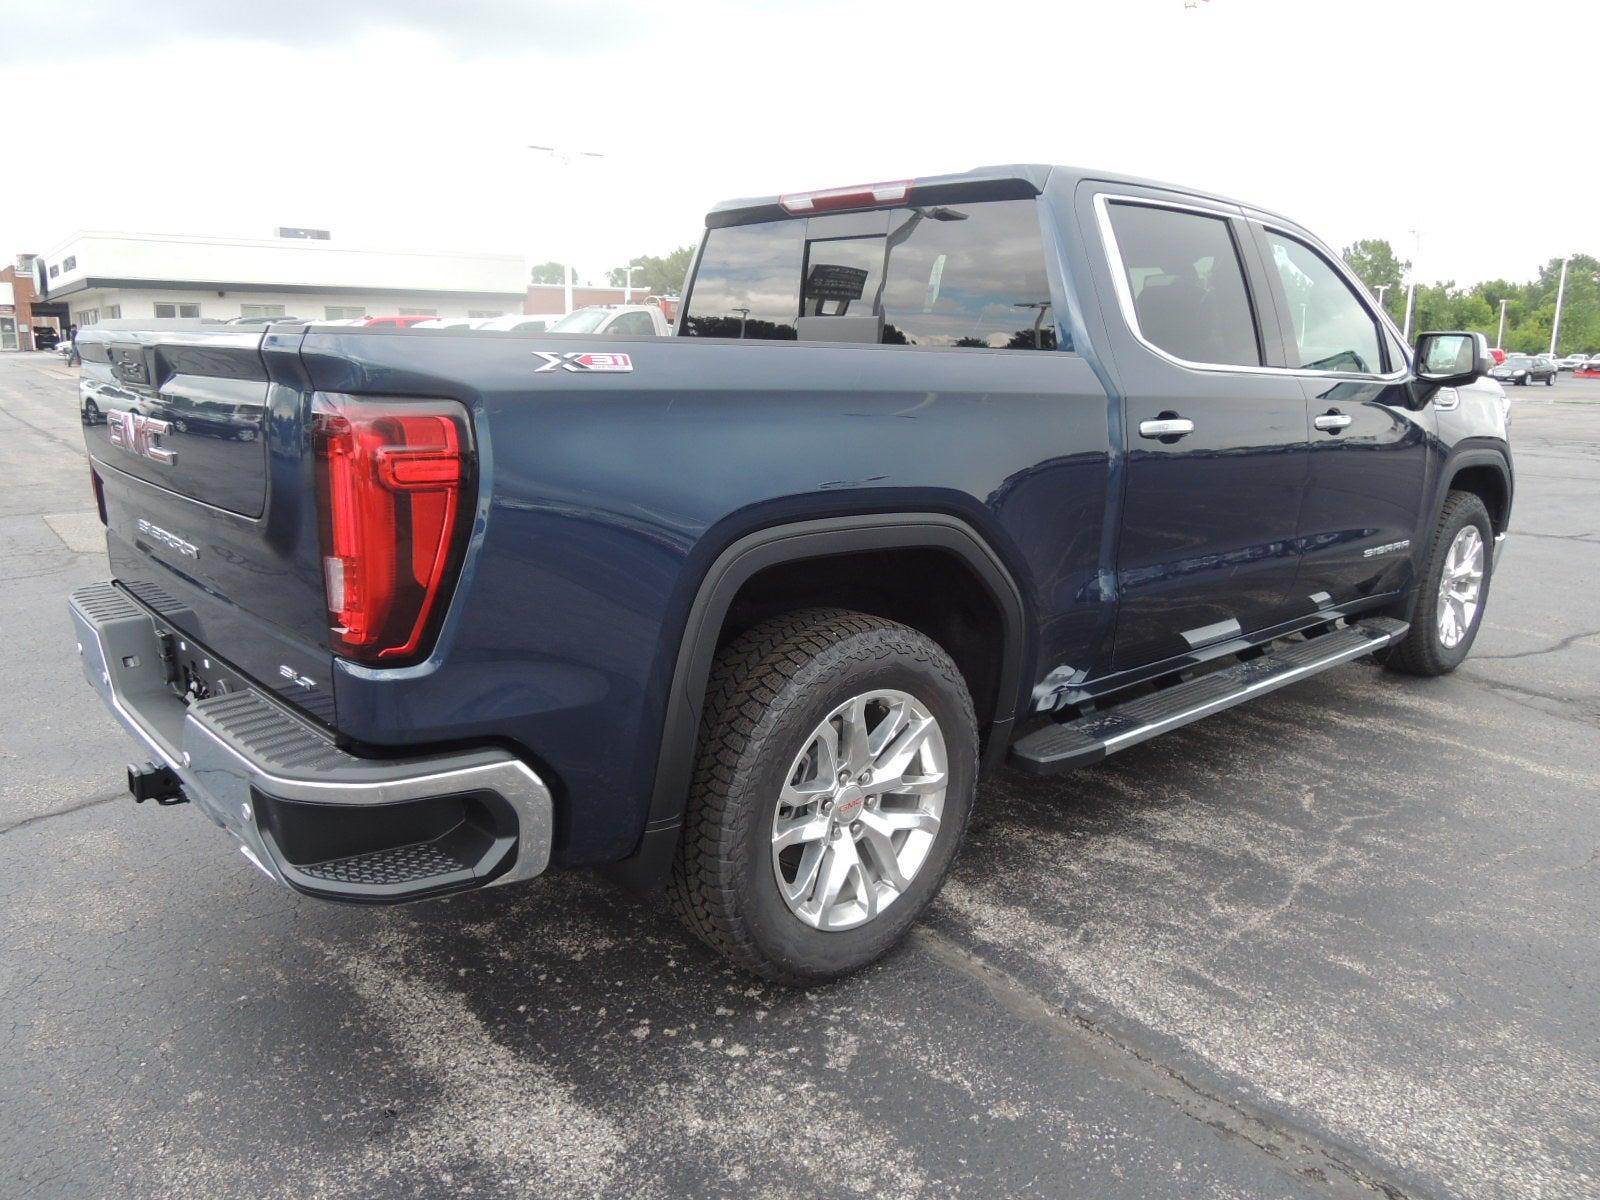 2021 GMC Sierra 1500 Crew Cab 4x4, Pickup #MT282 - photo 2